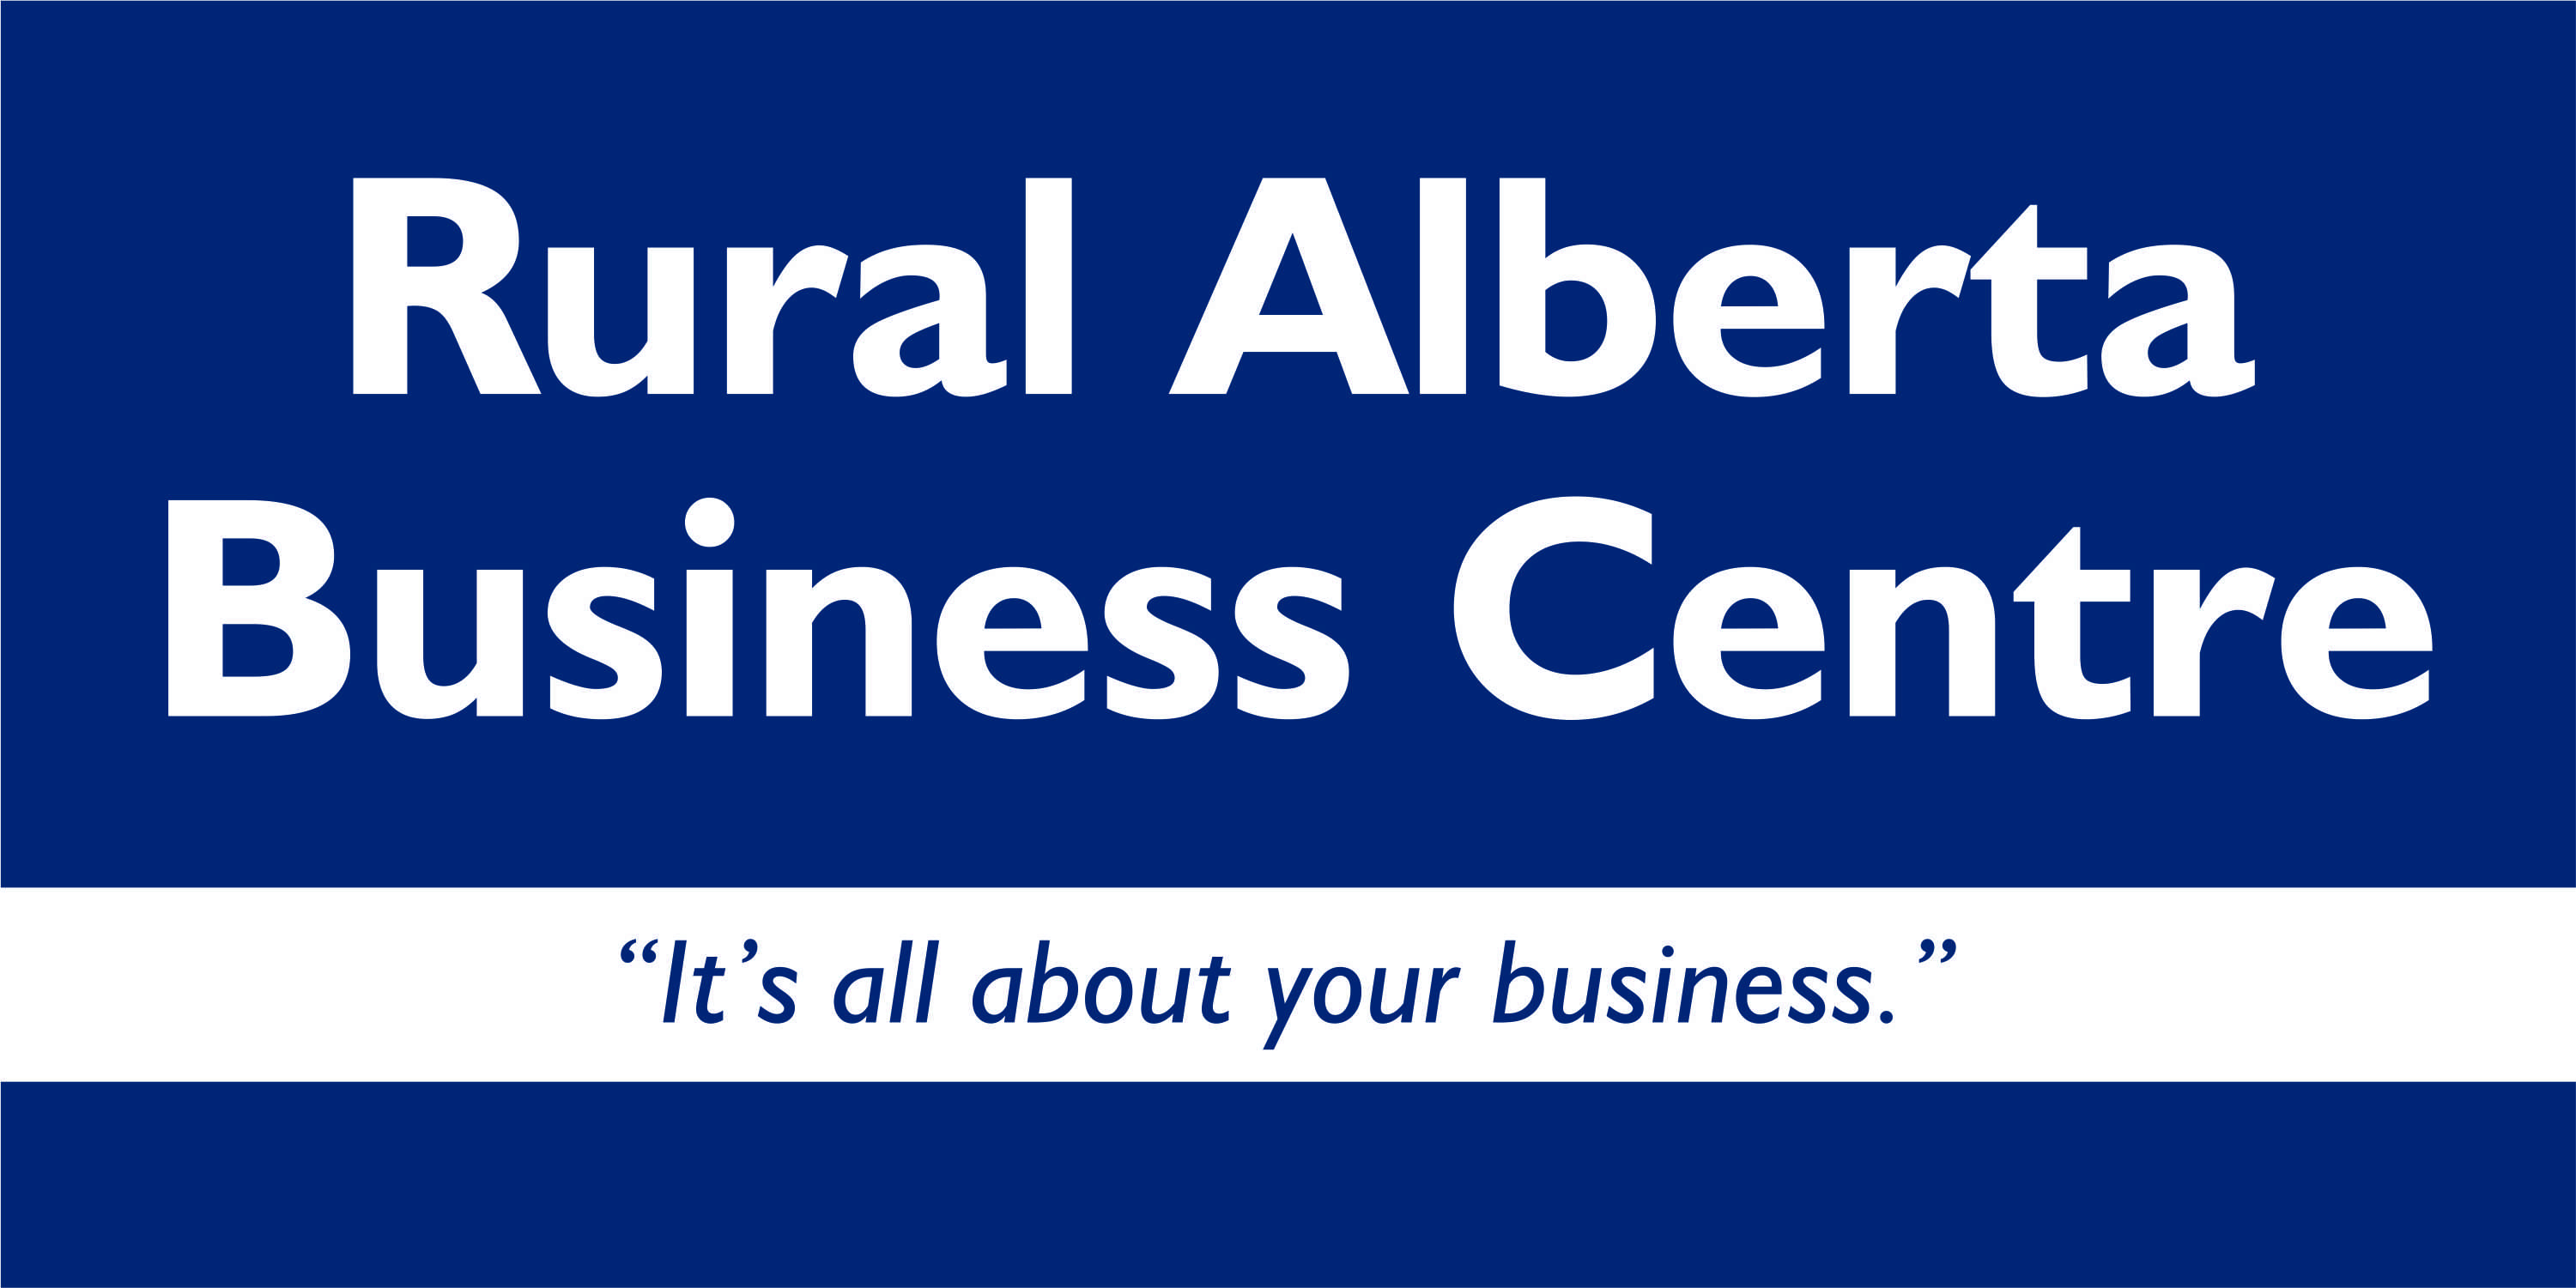 Rural Alberta Business Centre Logo